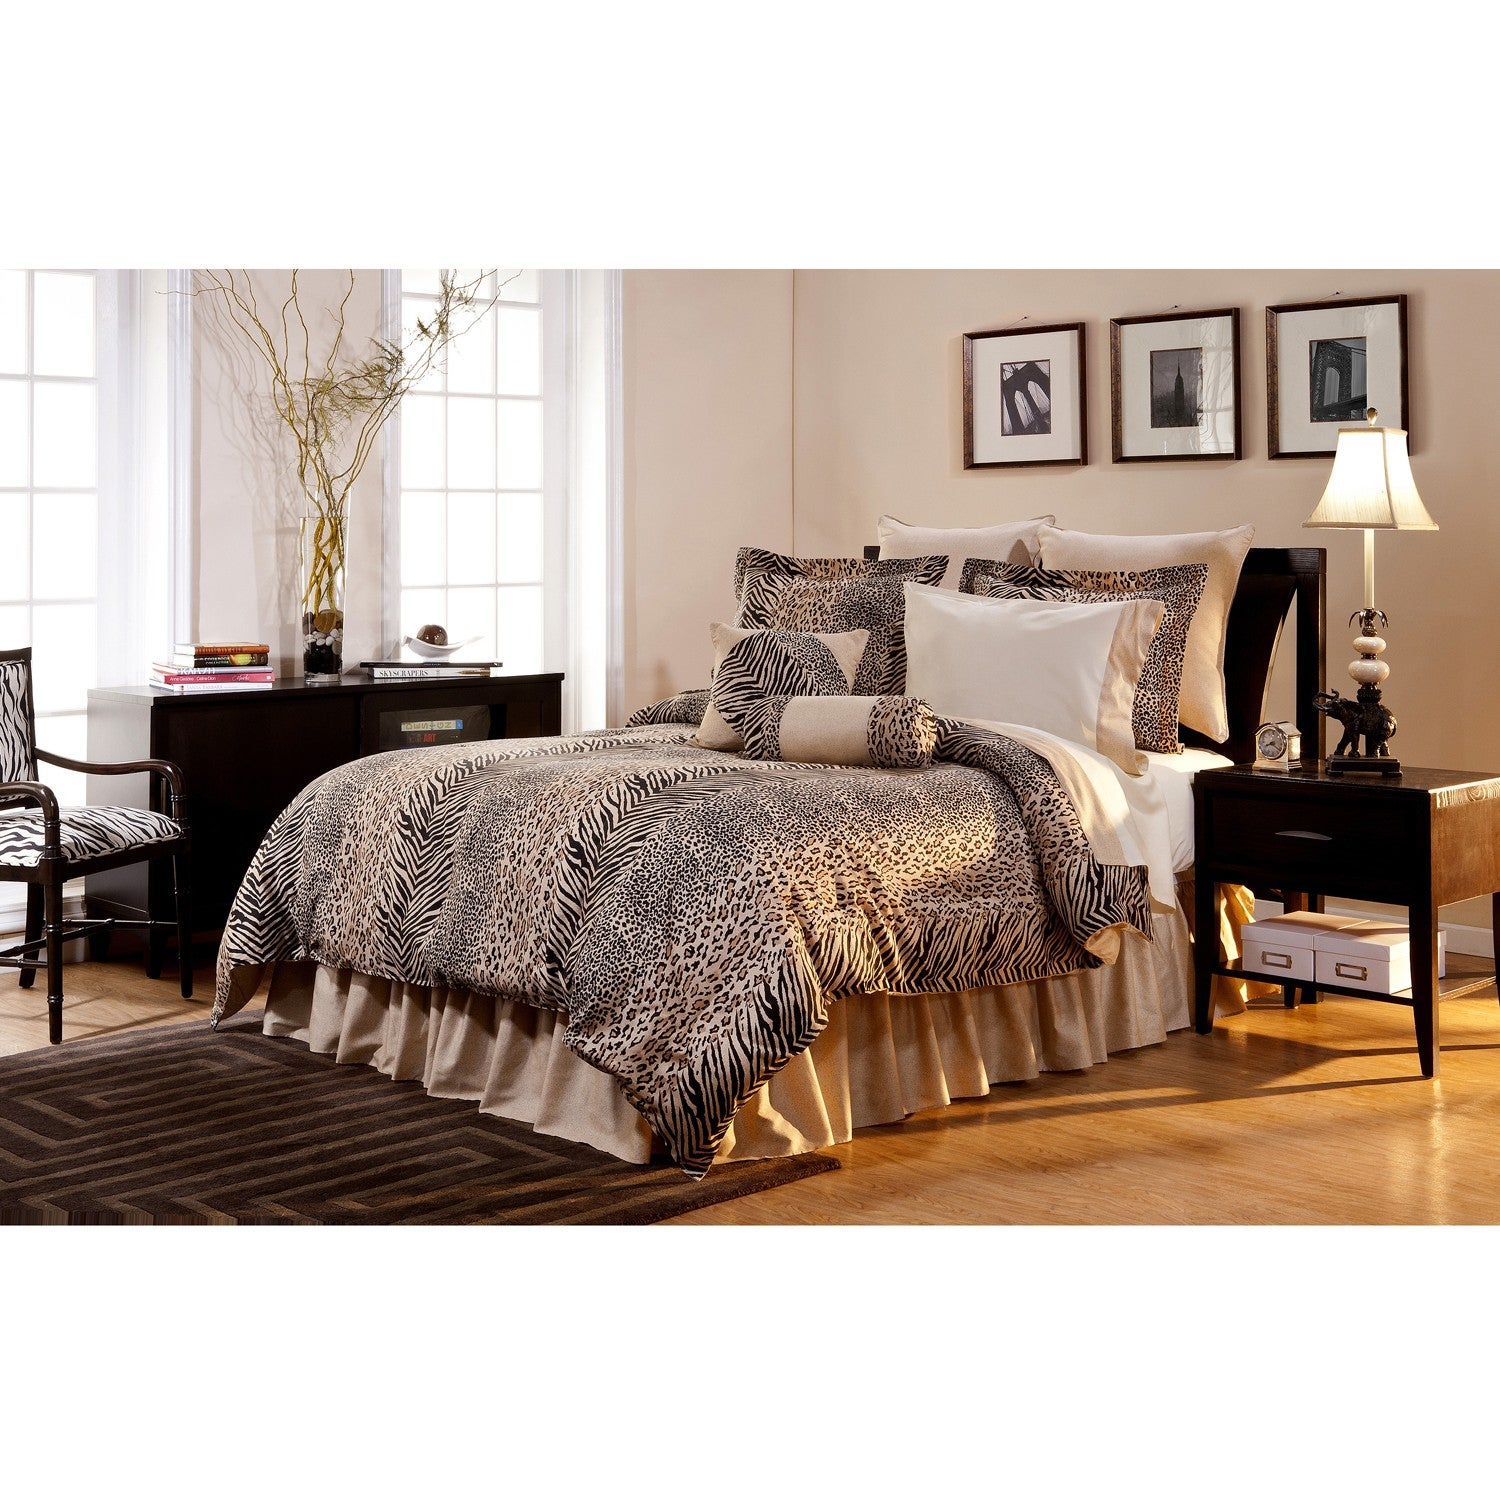 urban safari california king size 8 piece comforter set overstock